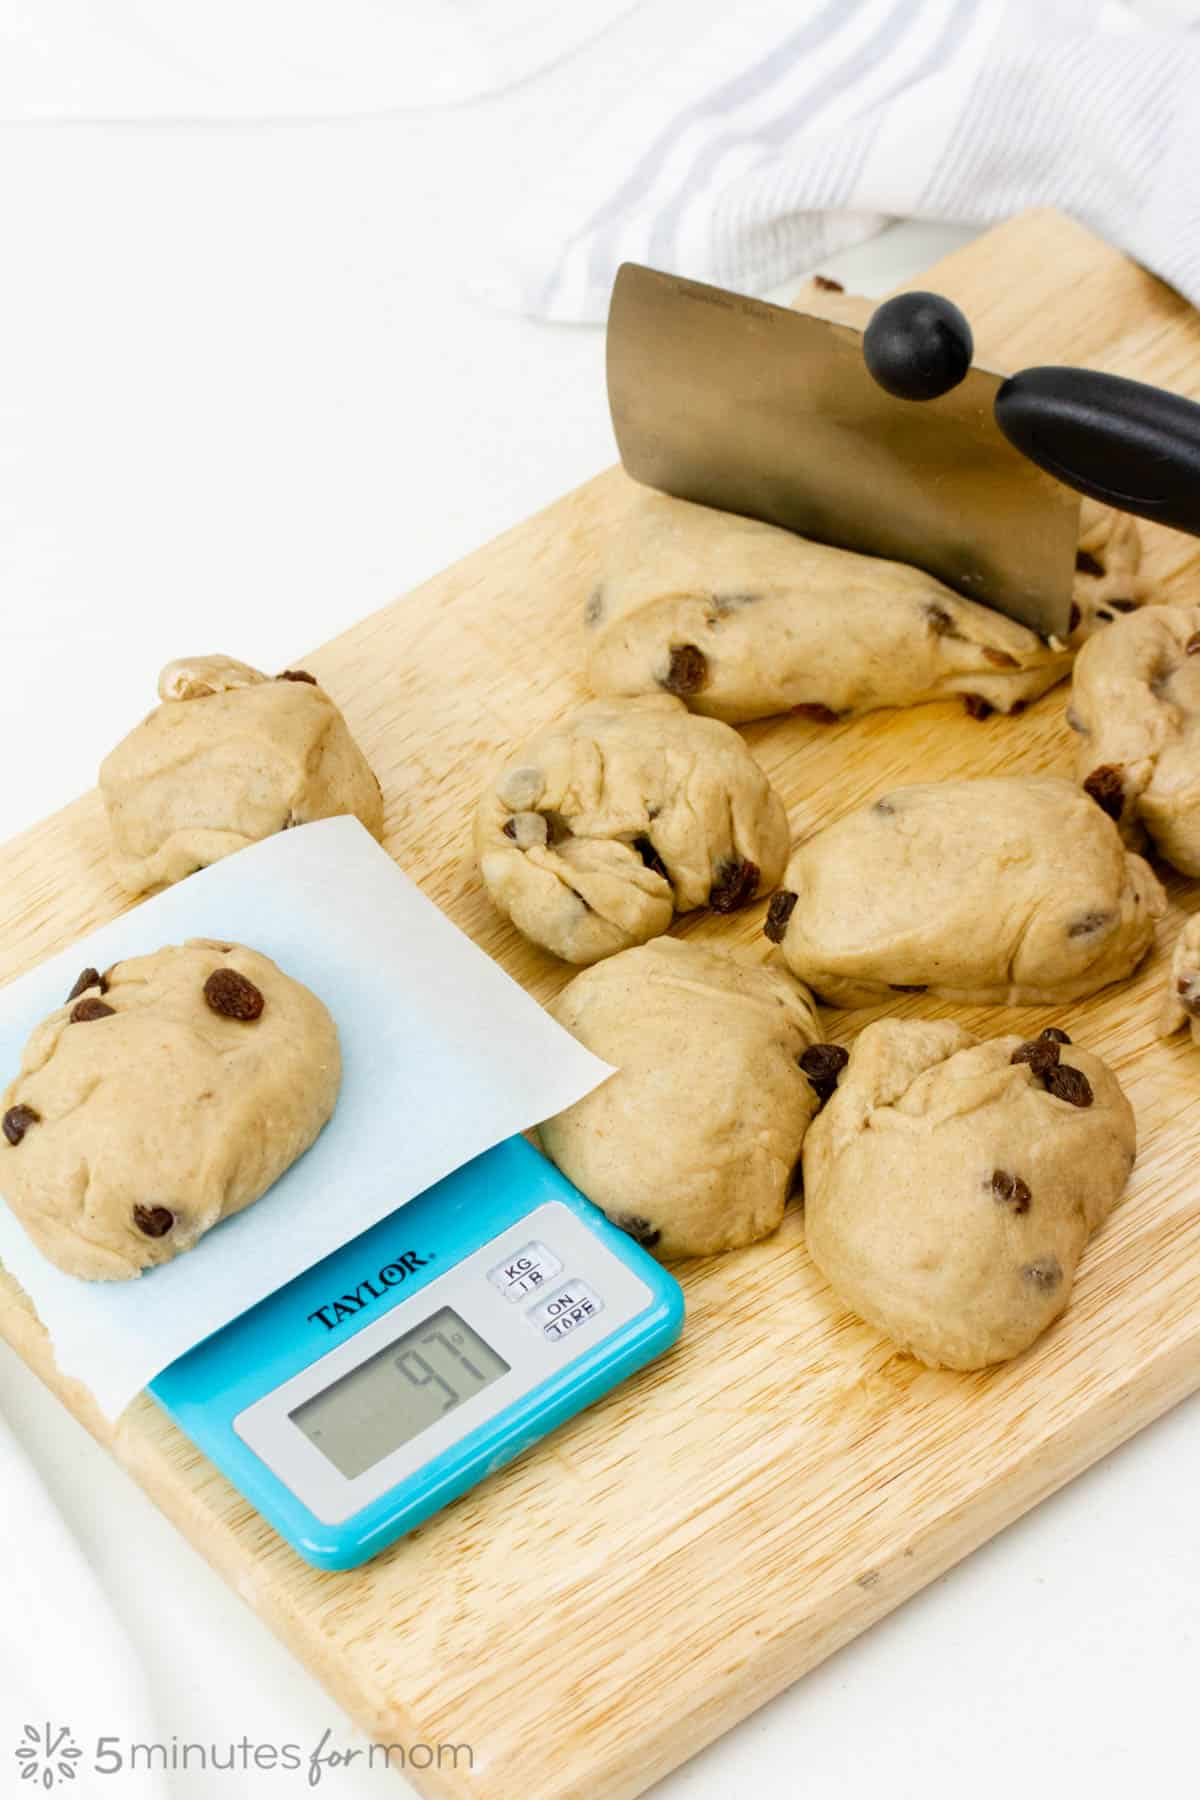 divide the dough in twelve and measure each portion with a kitchen scale for evenly baked buns